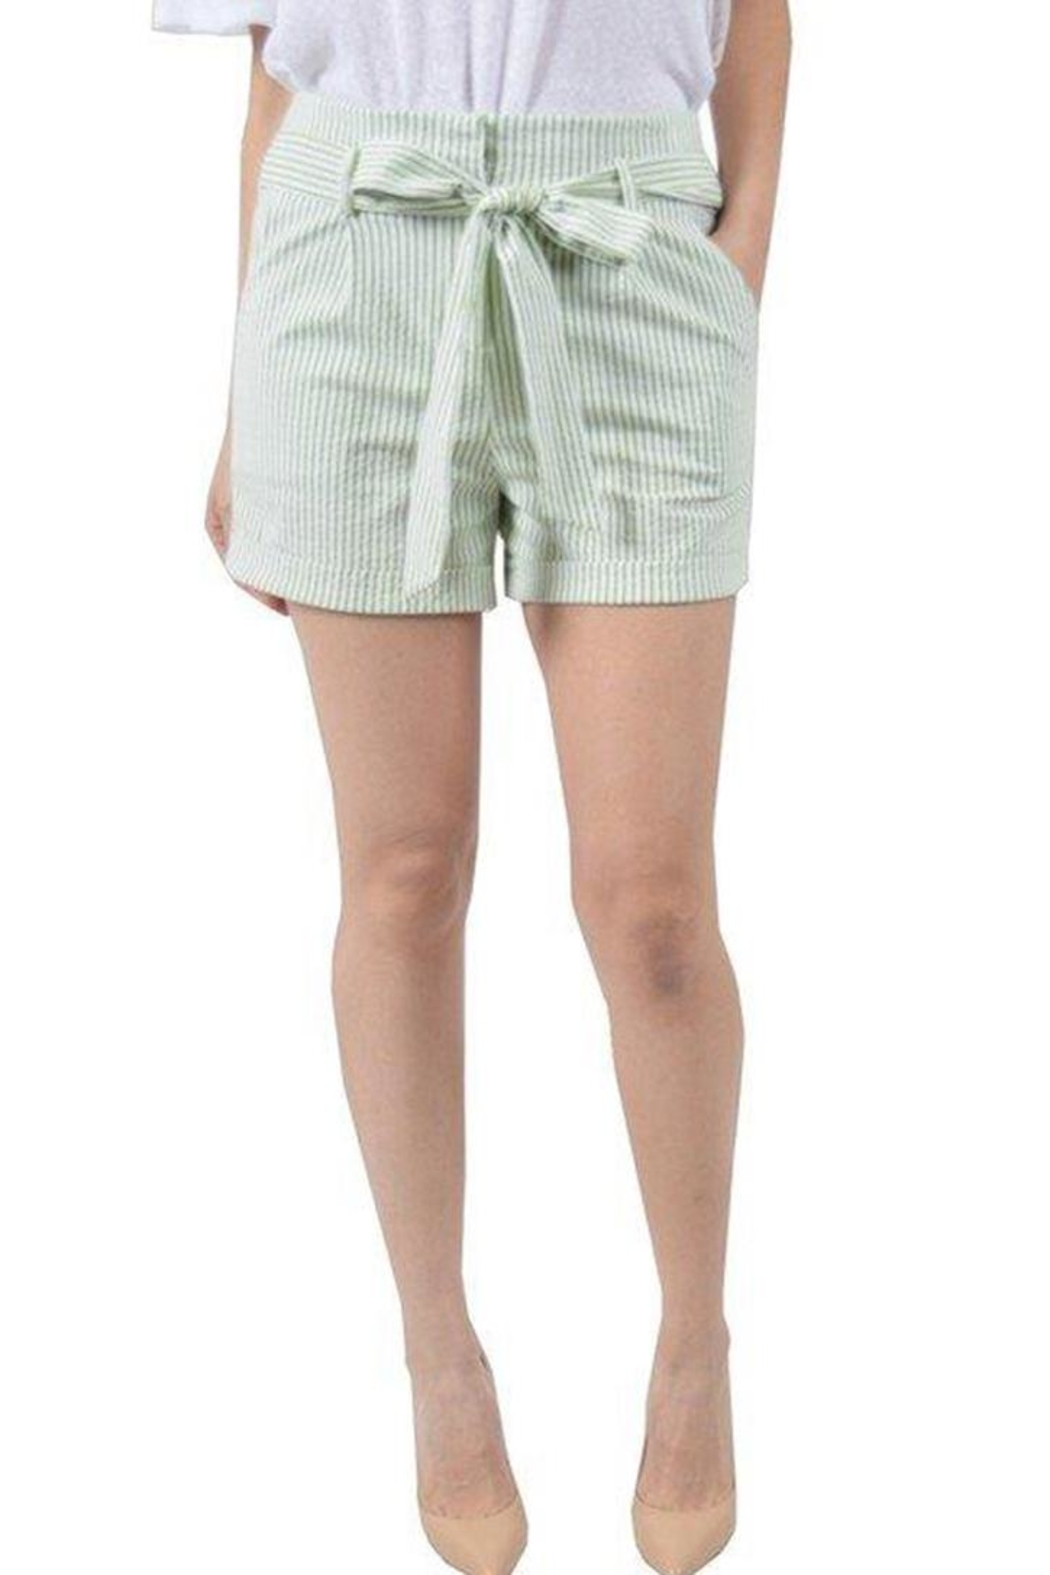 Potter's Pot Striped Shorts - Front Cropped Image